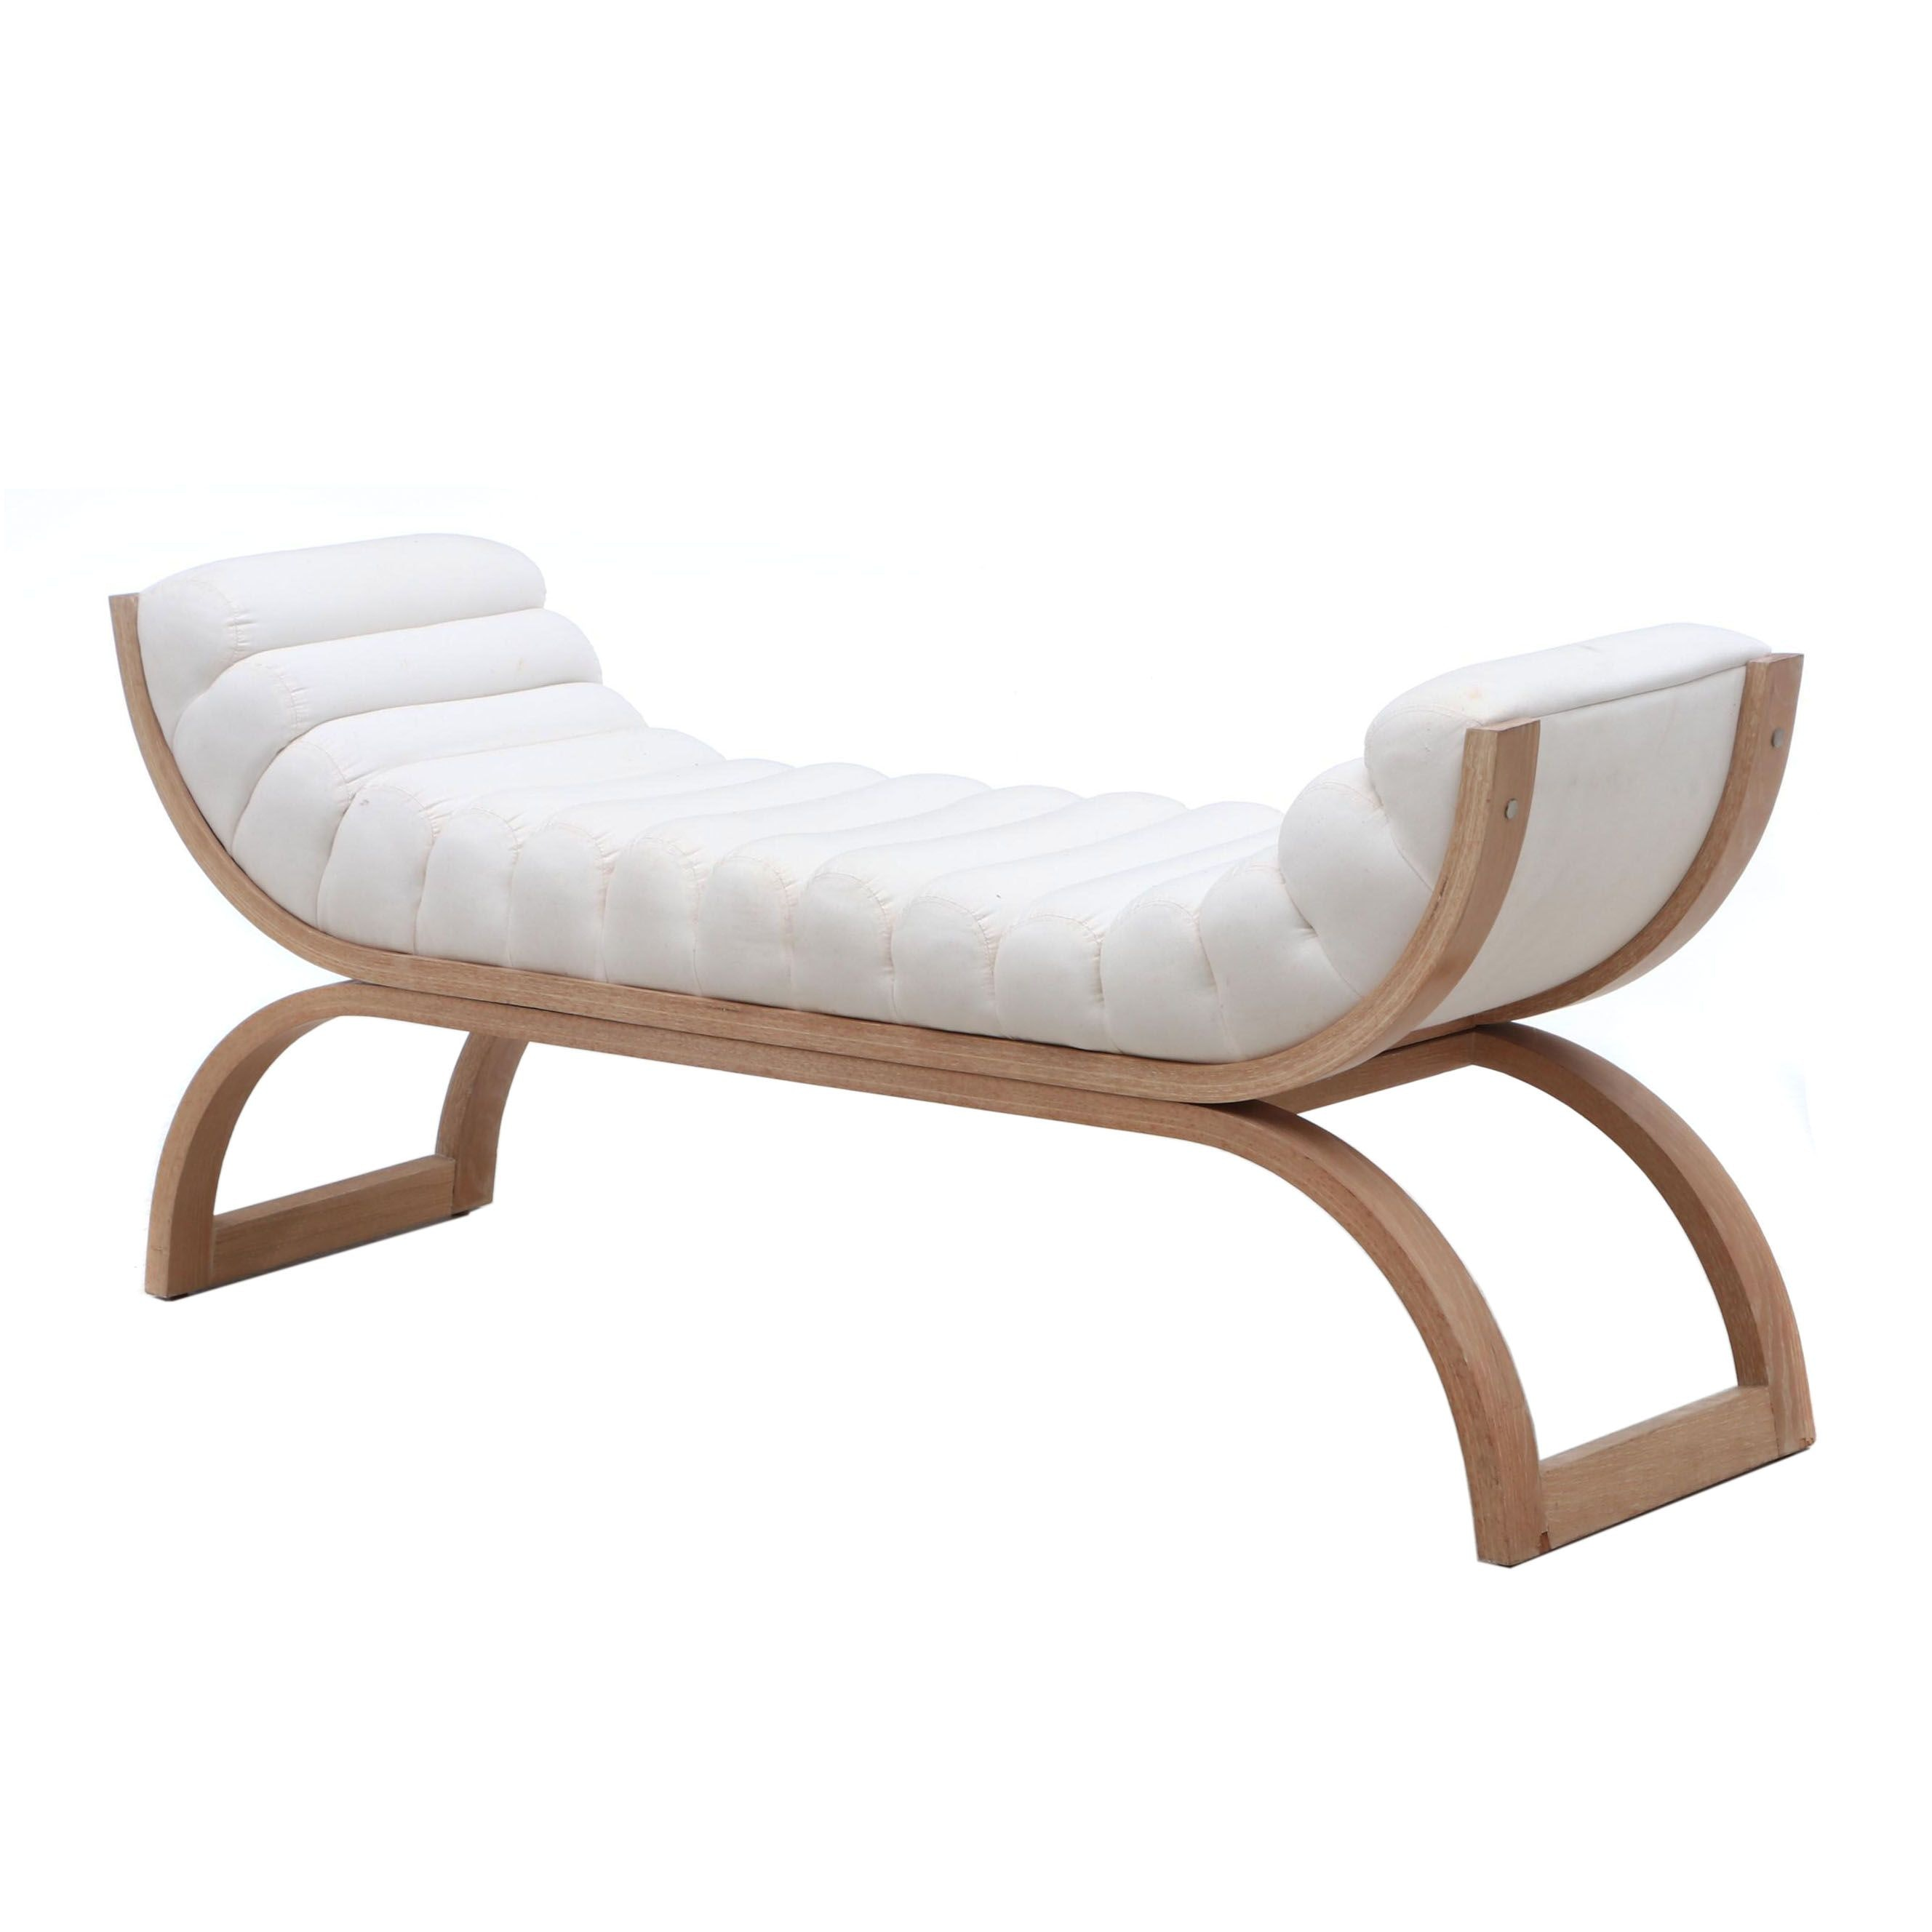 Modernist Channel Tufted Ash Bench